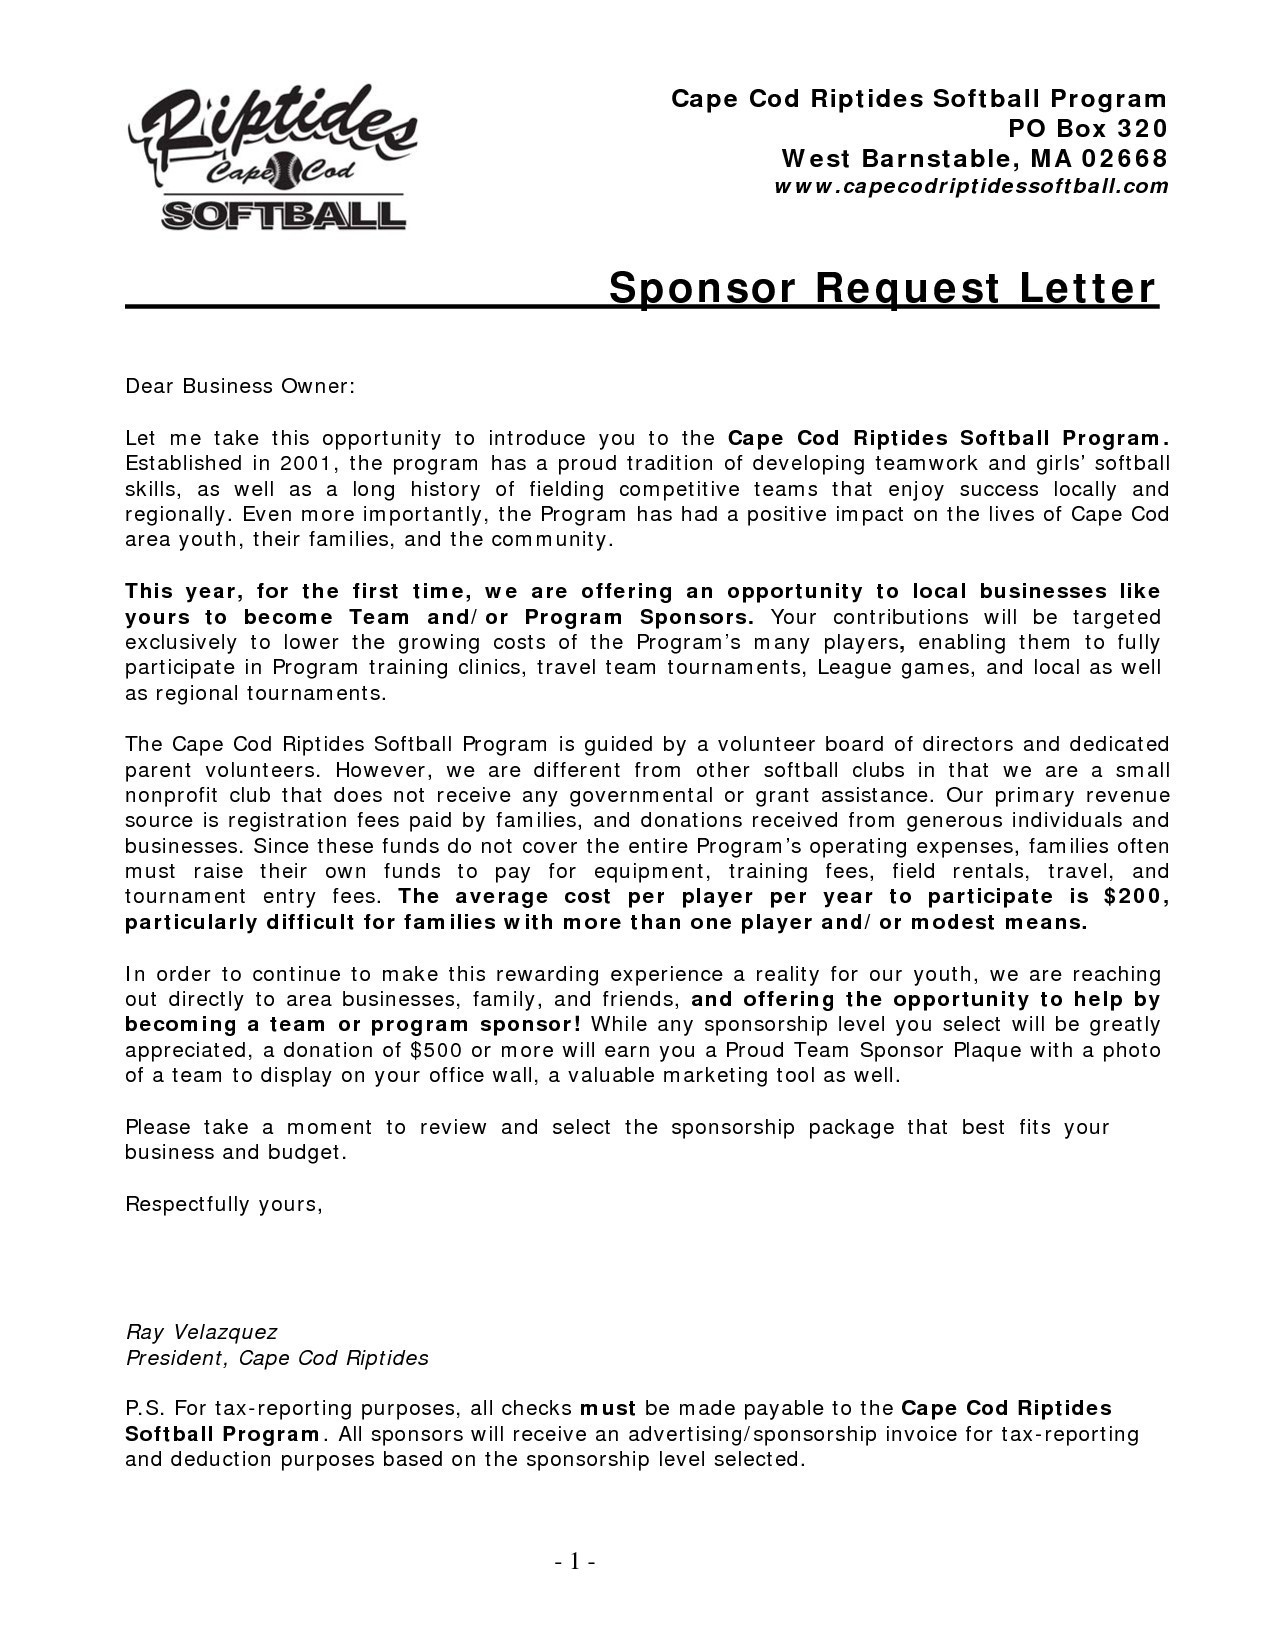 Sponsorship Letter Template for Donations - How to Write A Donation Request Letter Template Personalinjurylove